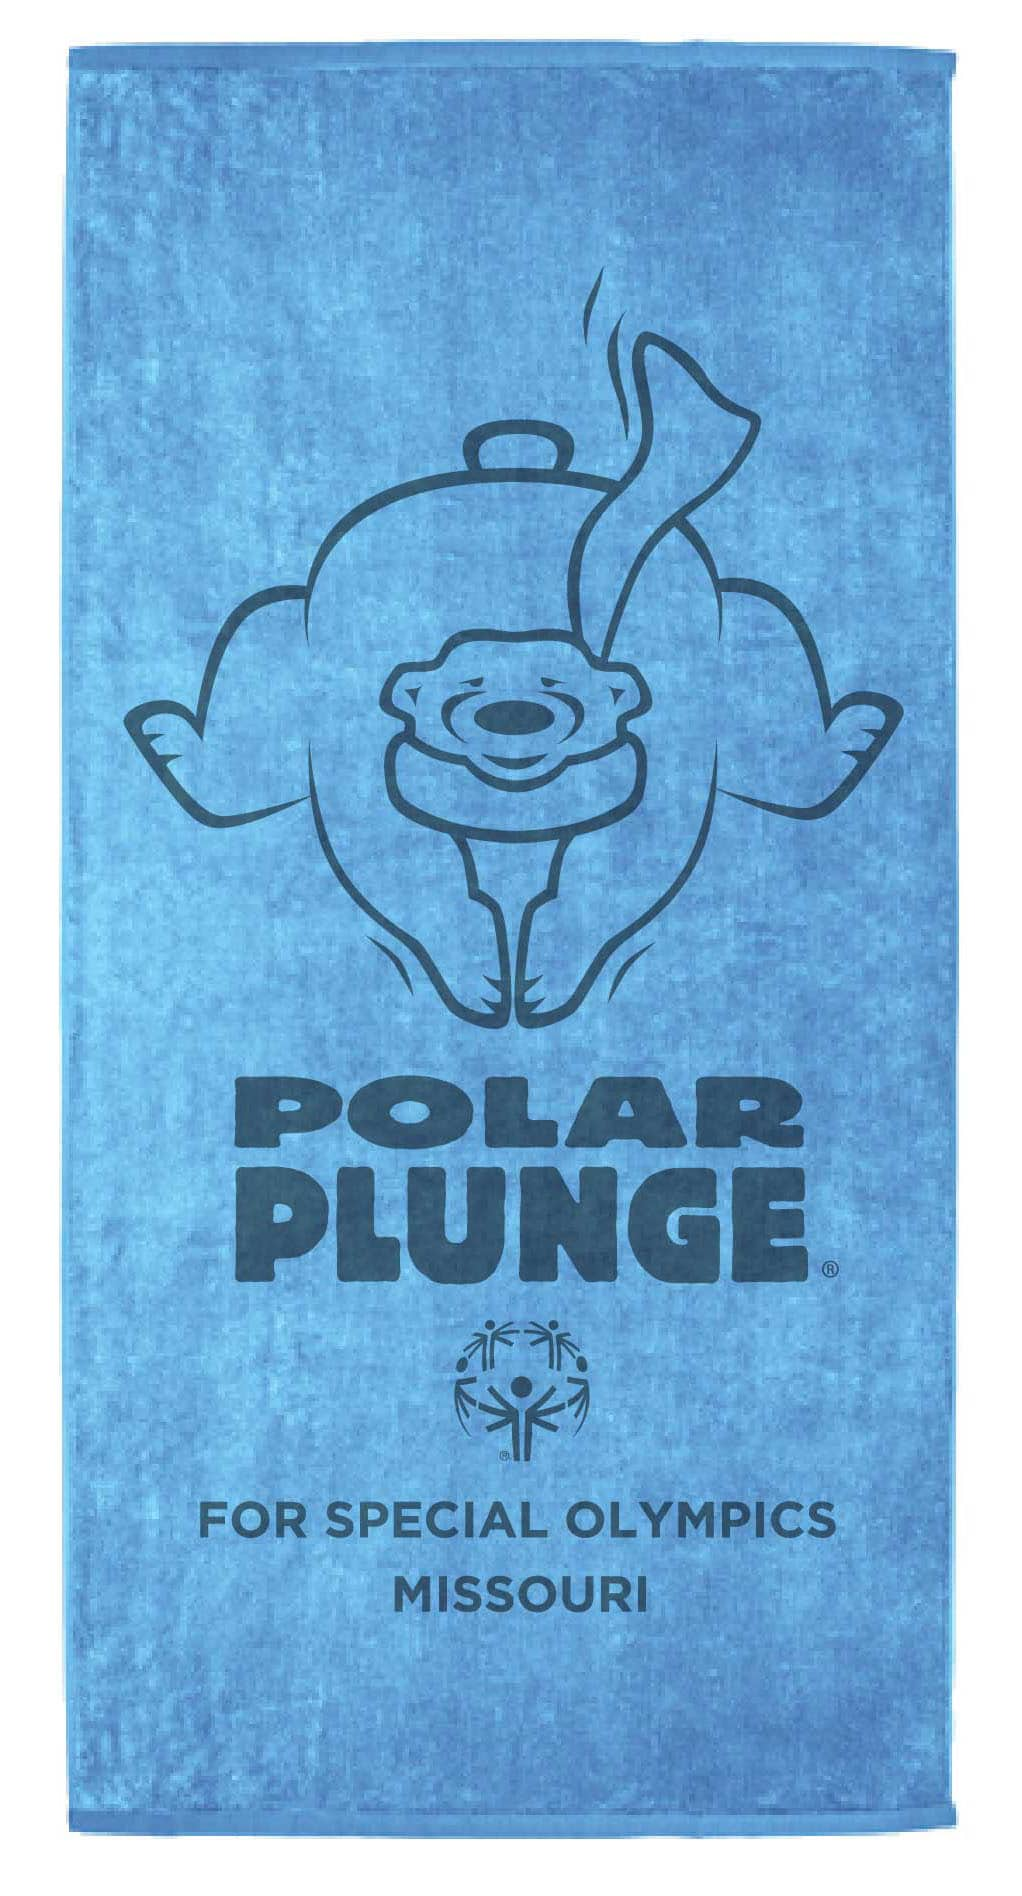 A blue towel with the Polar Plunge logo on it